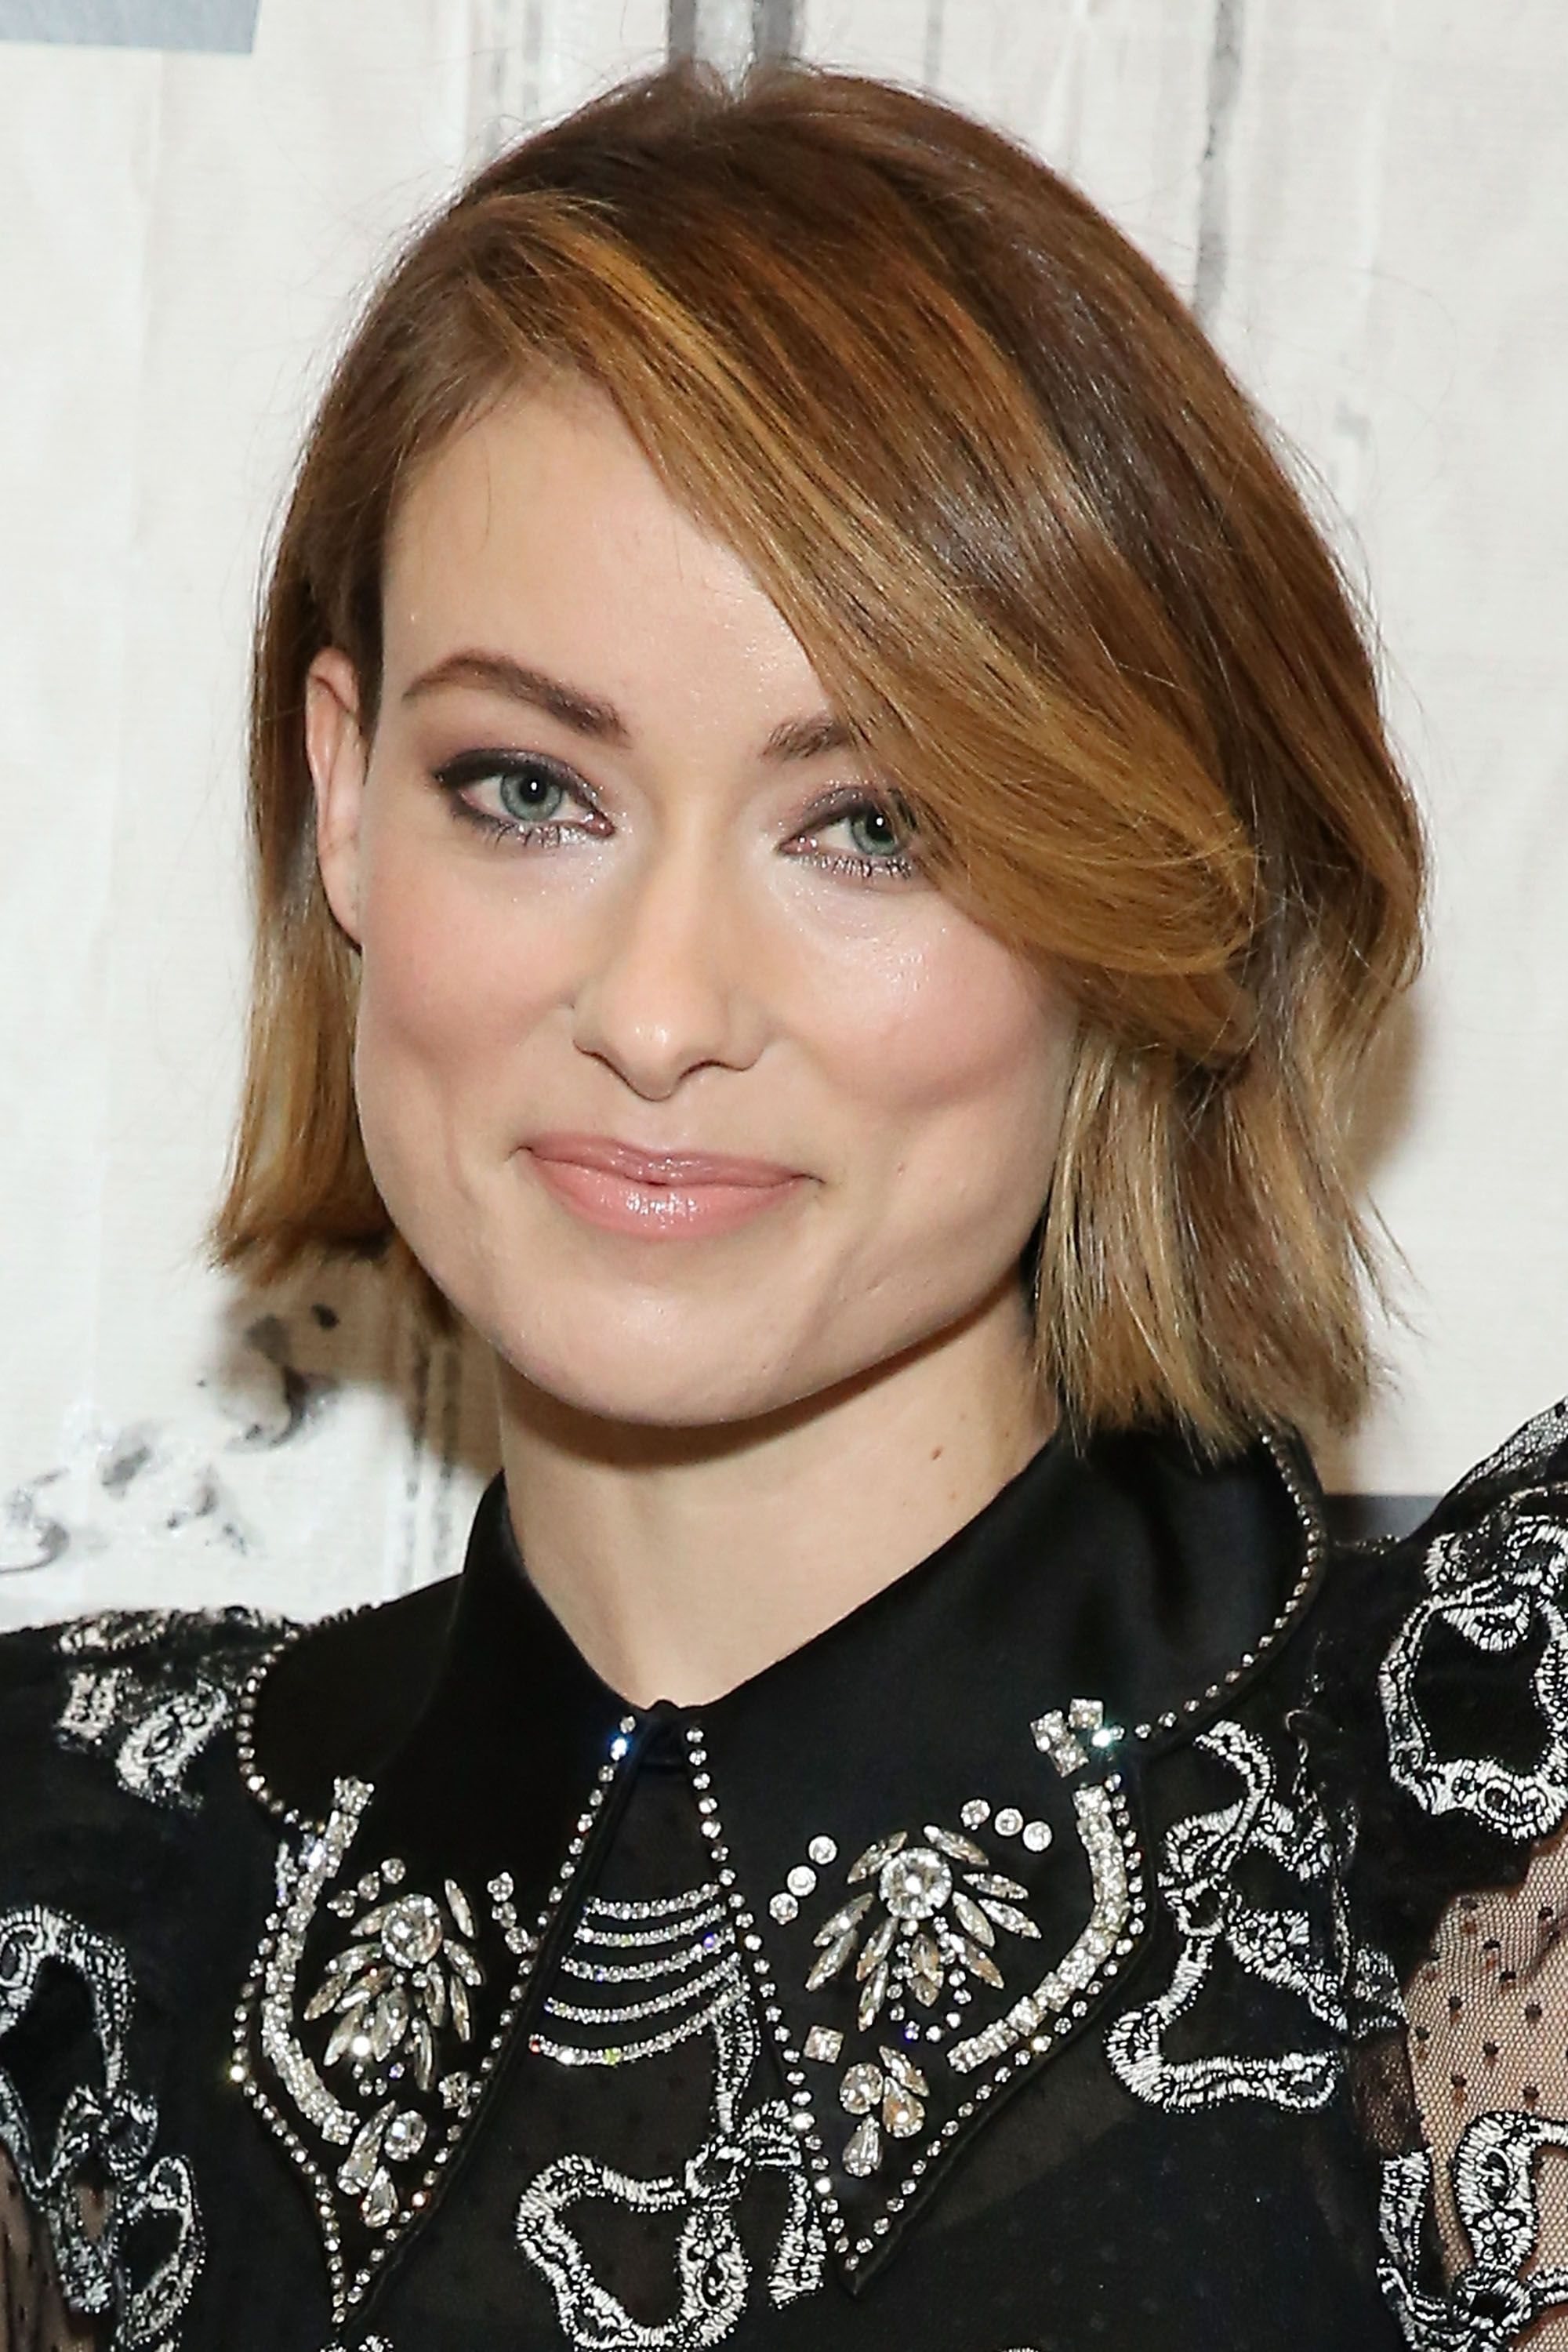 The 7 Best Hairstyles For Square Face Shapes Regarding Short Hairstyles For Square Faces And Thick Hair (View 21 of 25)